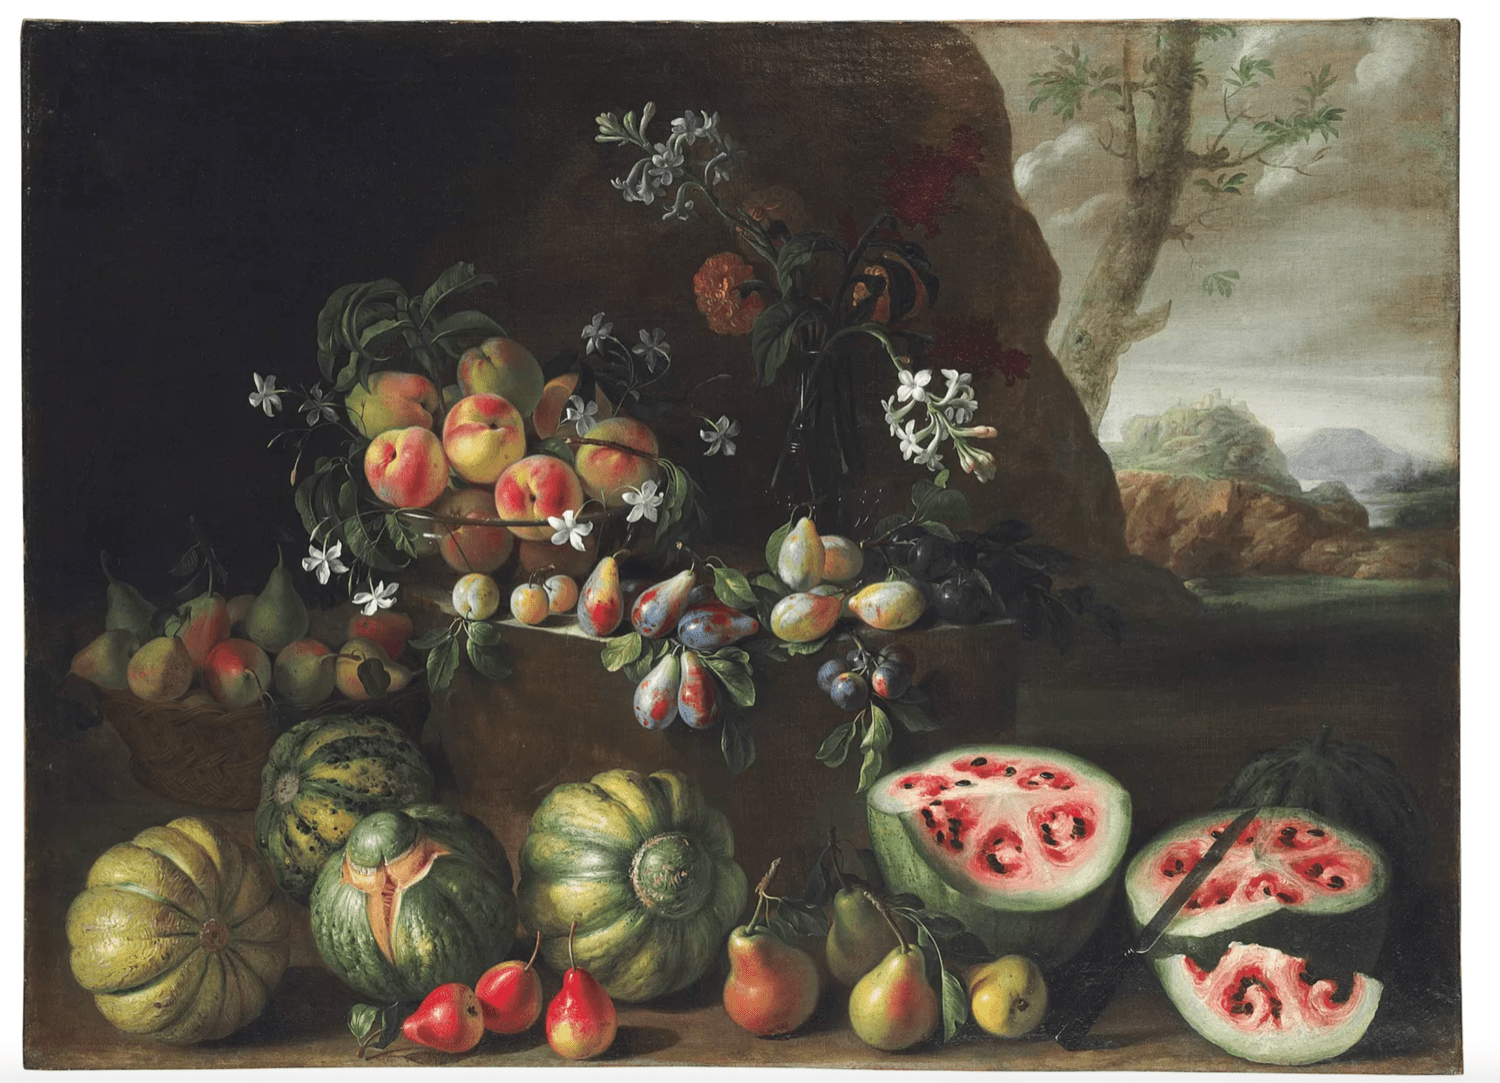 an old painting of a collection of fruit, including watermelons, which look familiar, but different